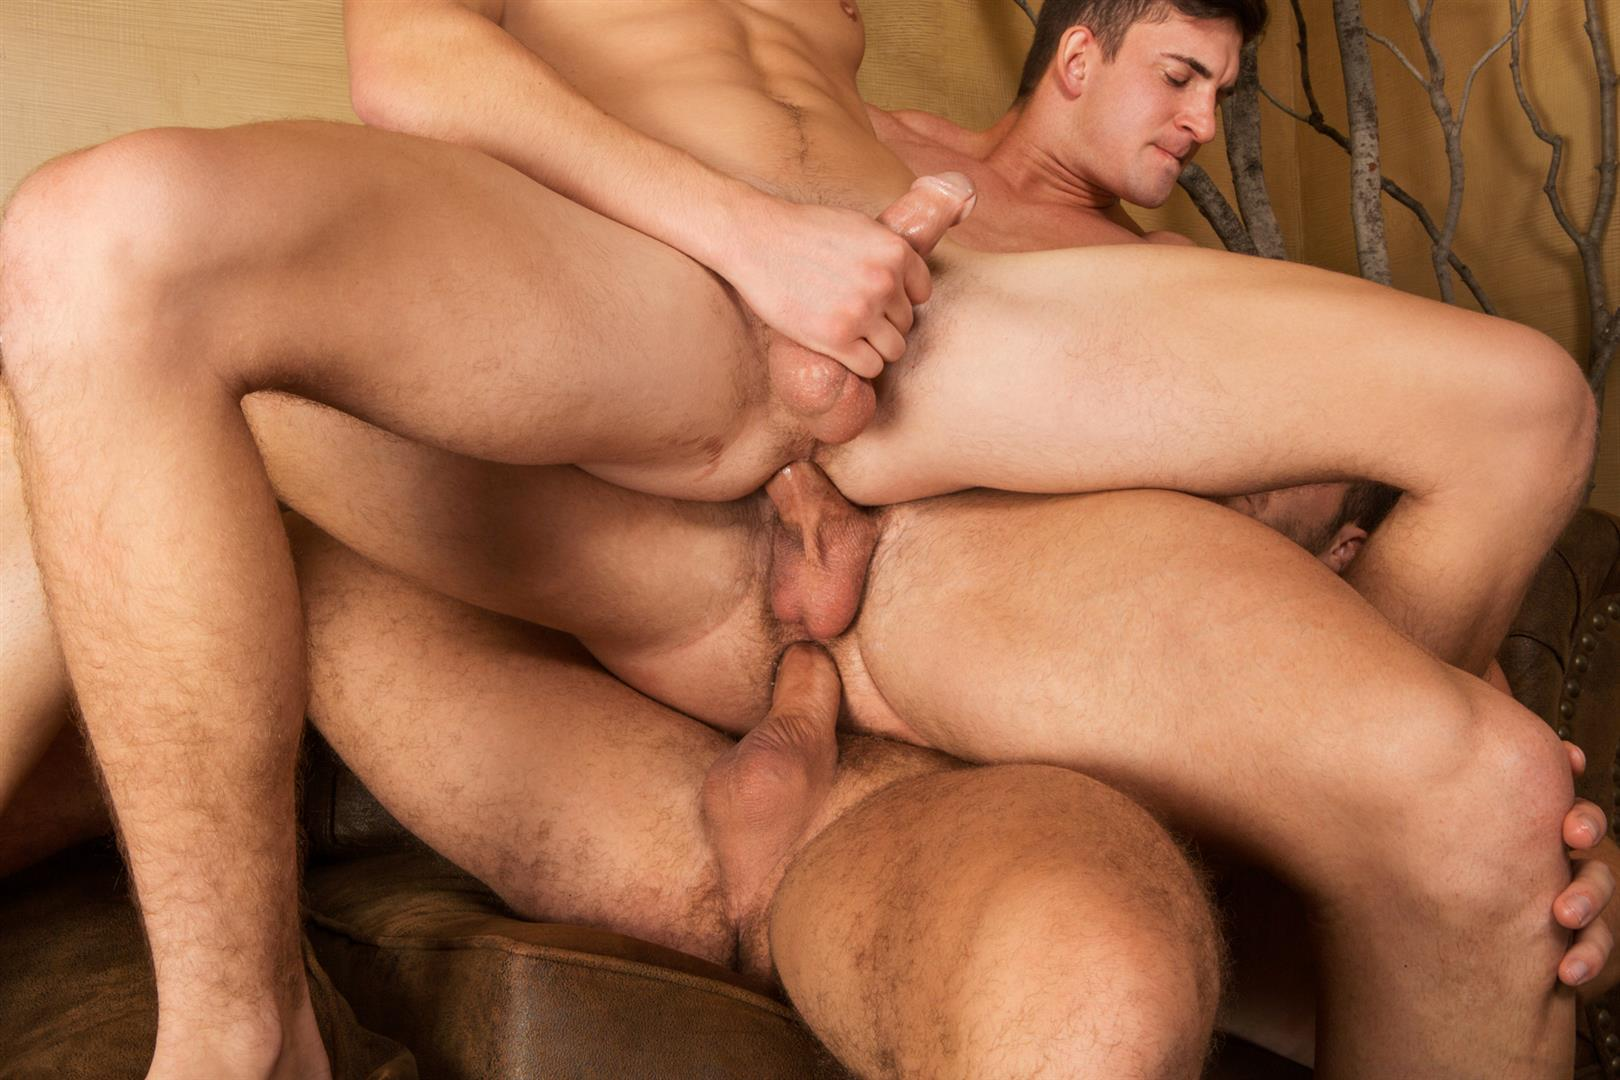 Sean-Cody-Winter-Getaway-Day-2-Big-Dick-Hunks-Fucking-Bareback-Amateur-Gay-Porn-24 Sean Cody Takes The Boys On A 8-Day Bareback Winter Getaway